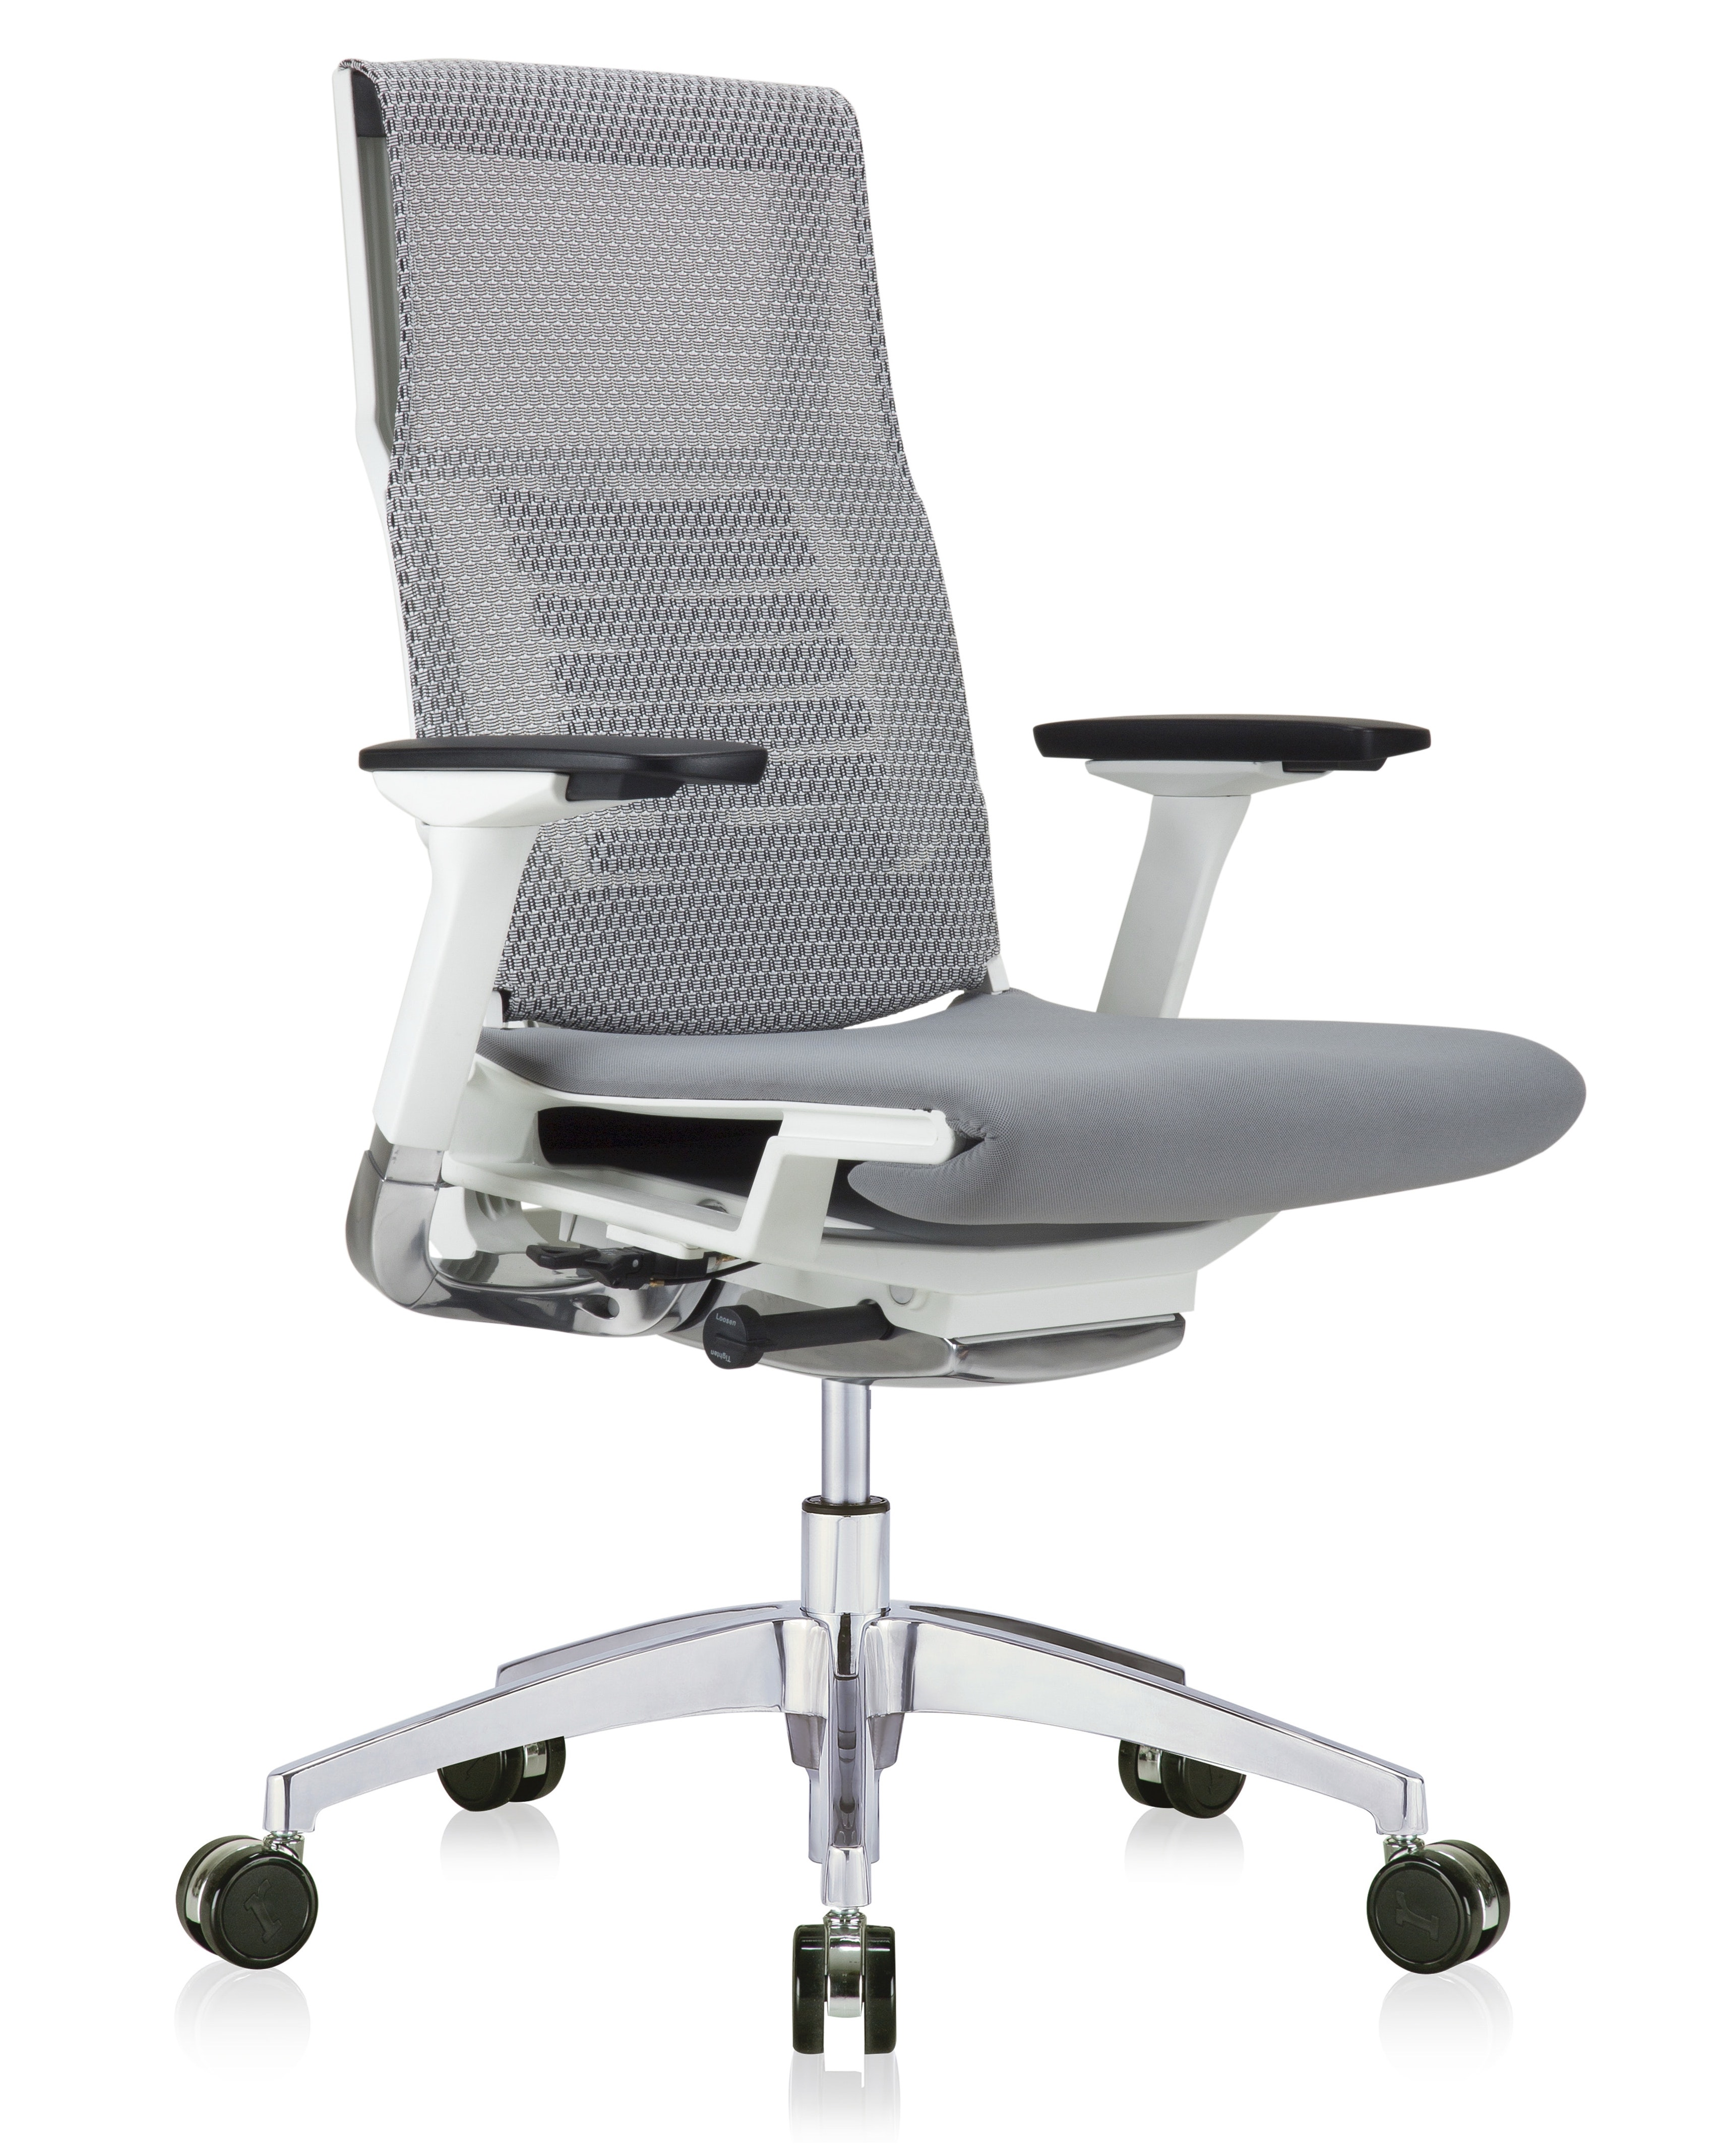 eurotech powerfit white frame office chair with grey mesh back and fabric seat